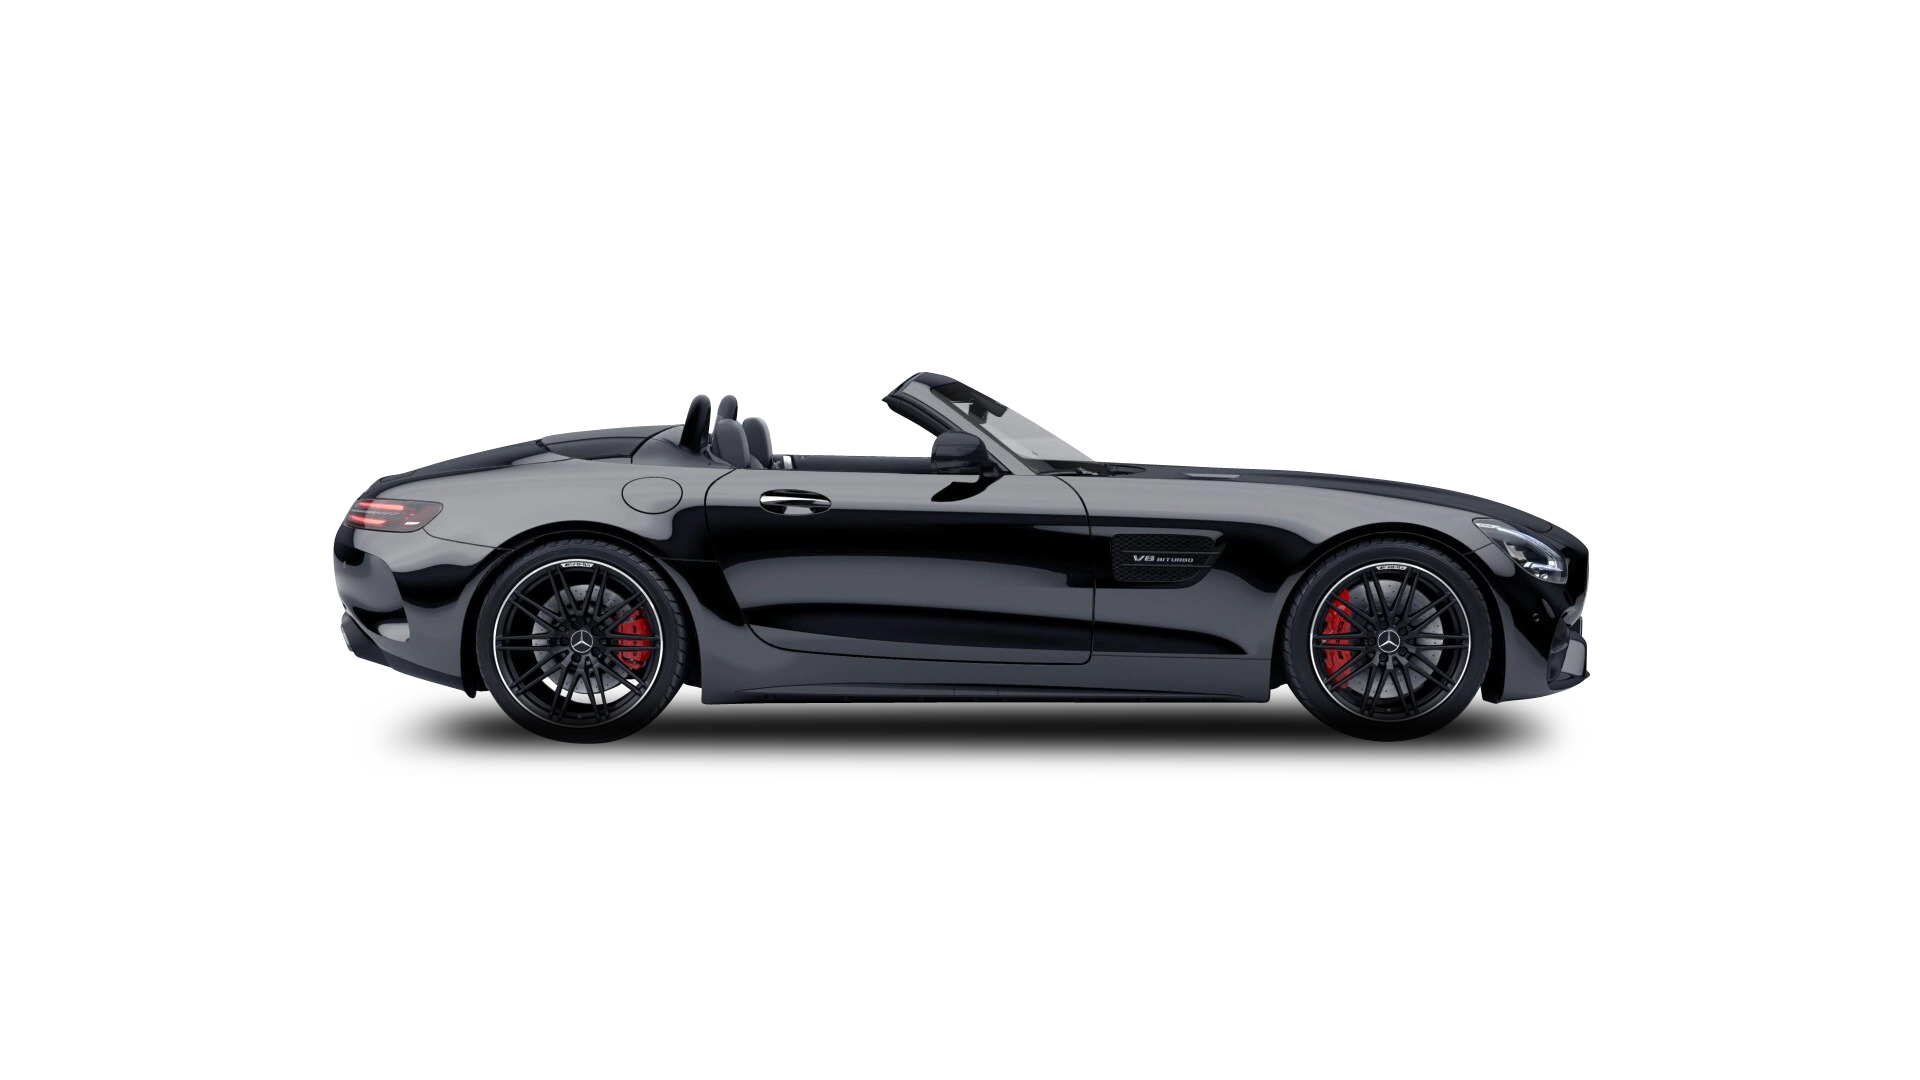 https://cogcms-images.azureedge.net/media/35453/mercedes-amg-gt-c-roadster.png